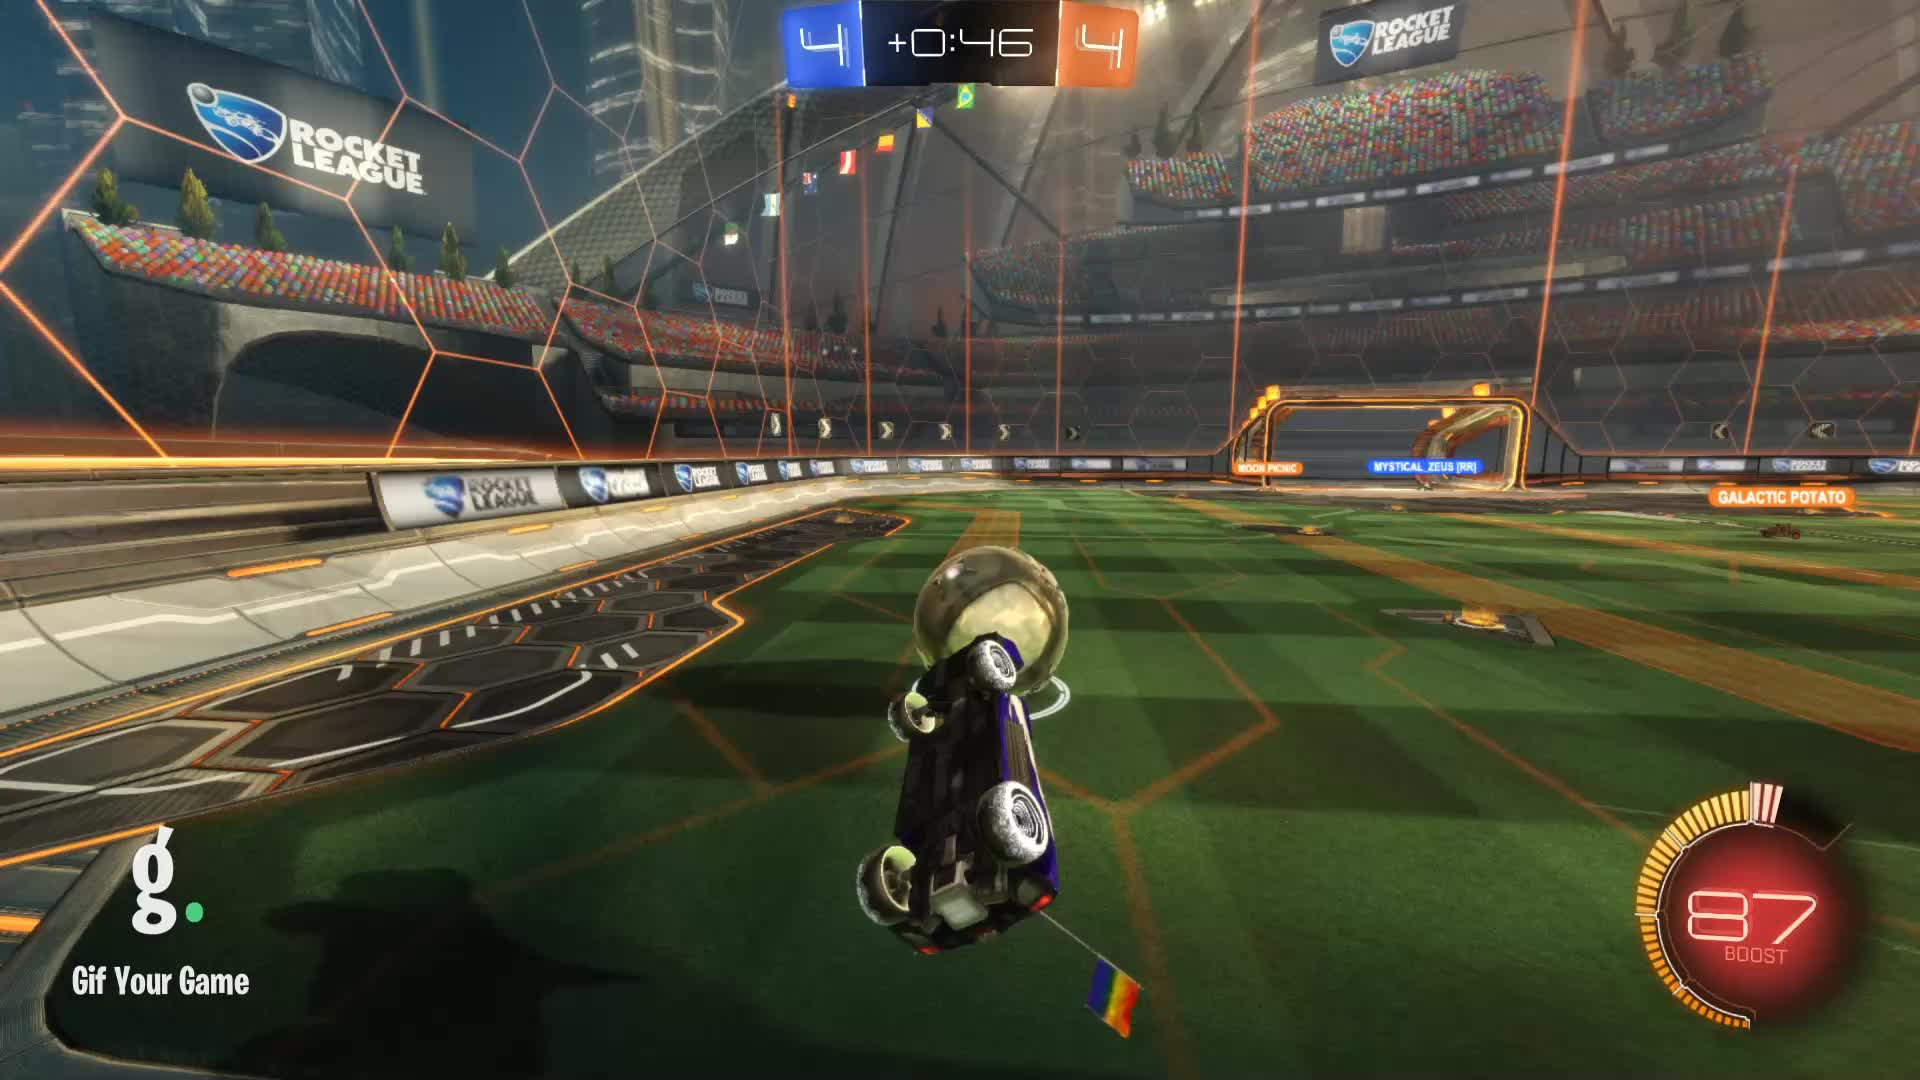 Gif Your Game, GifYourGame, I like beards :), Rocket League, RocketLeague, Goal 9: I like beards :) GIFs